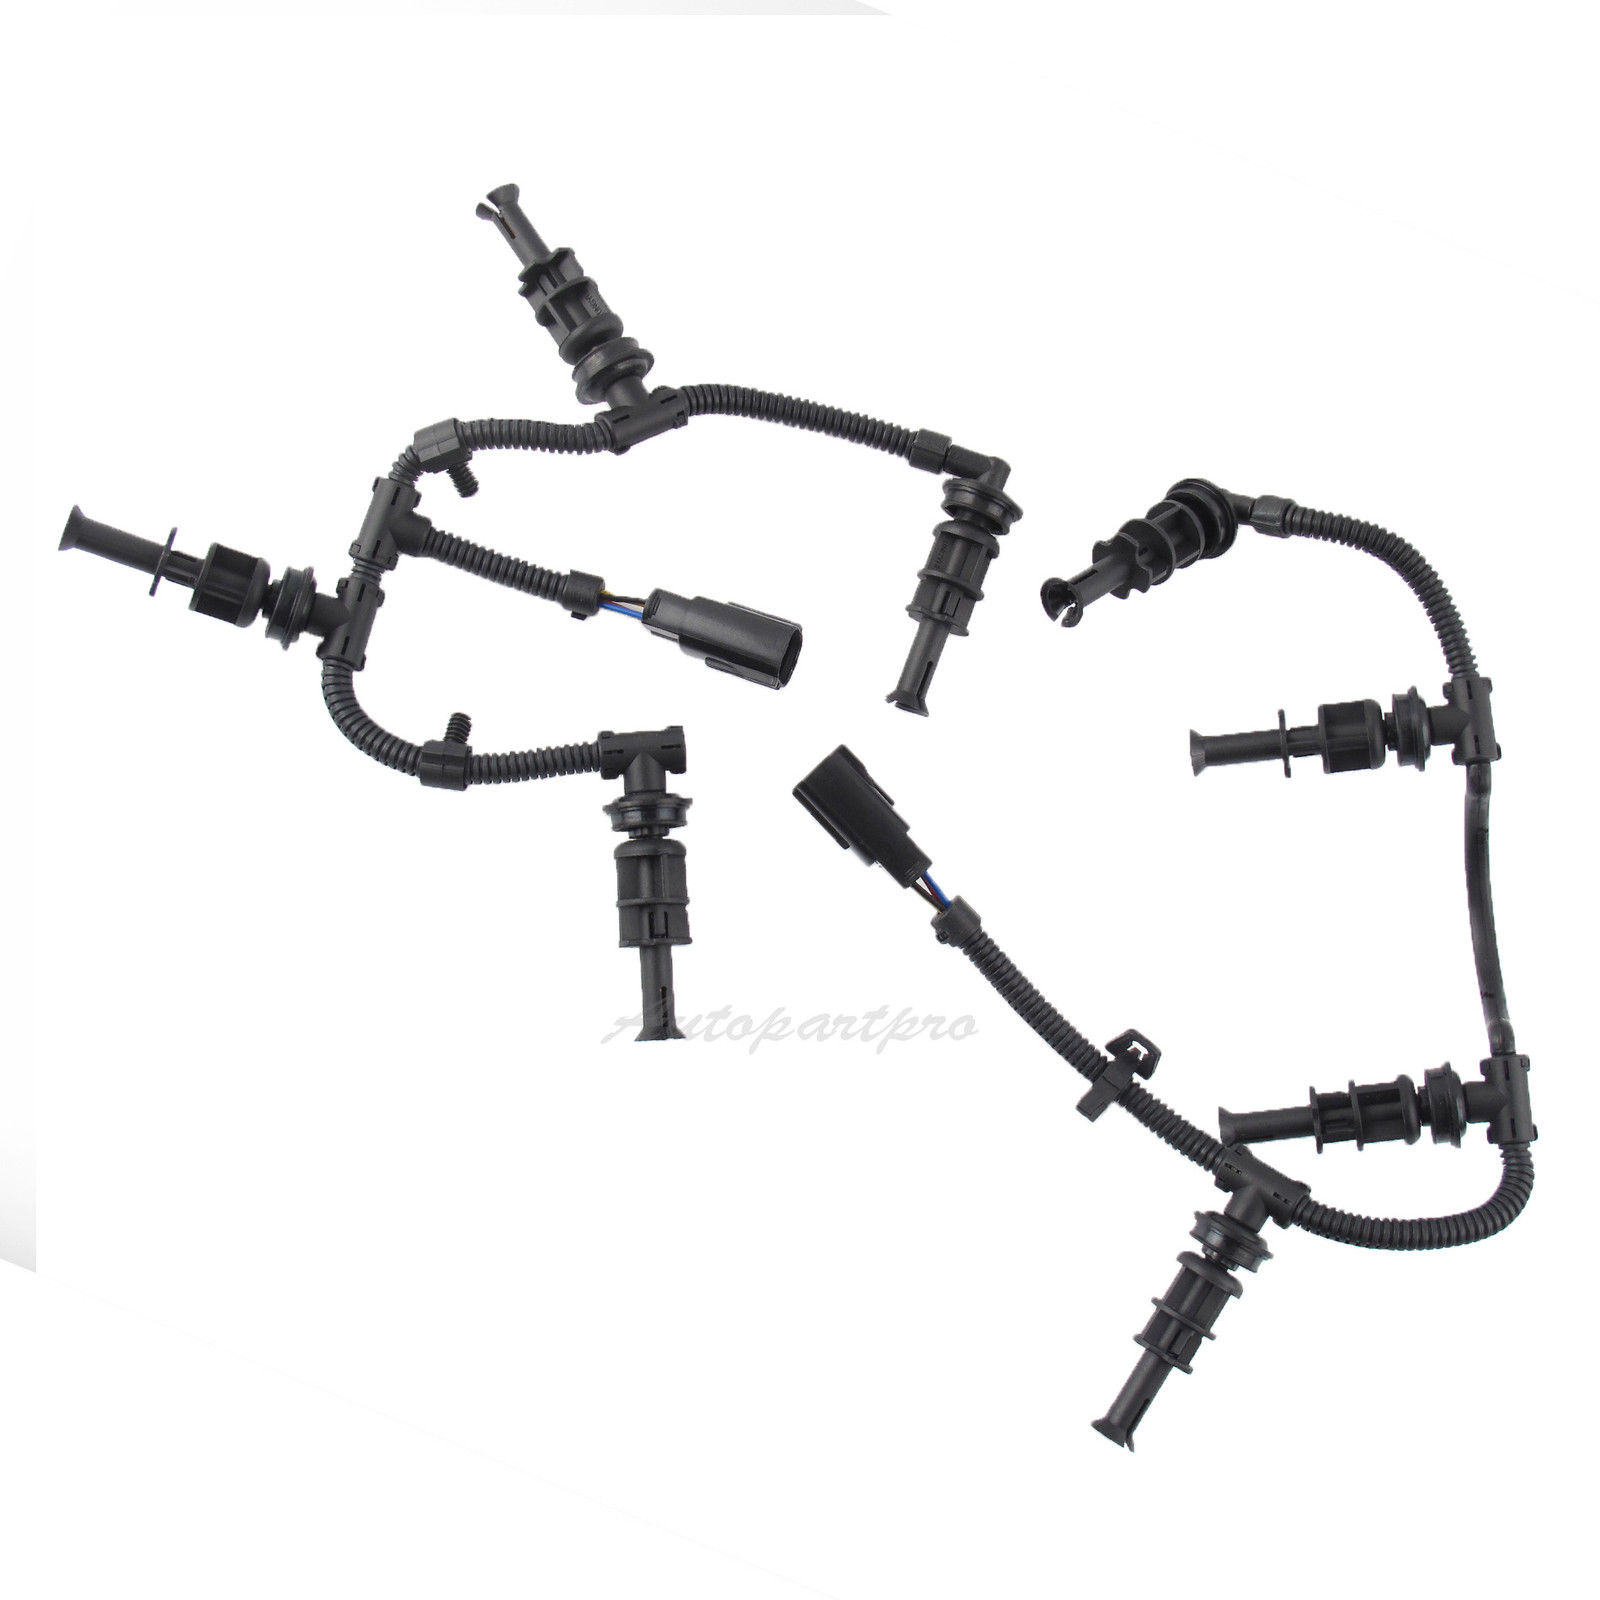 hight resolution of details about 2008 2010 ford f350 6 4l powerstroke glow plug wiring harnesses right left